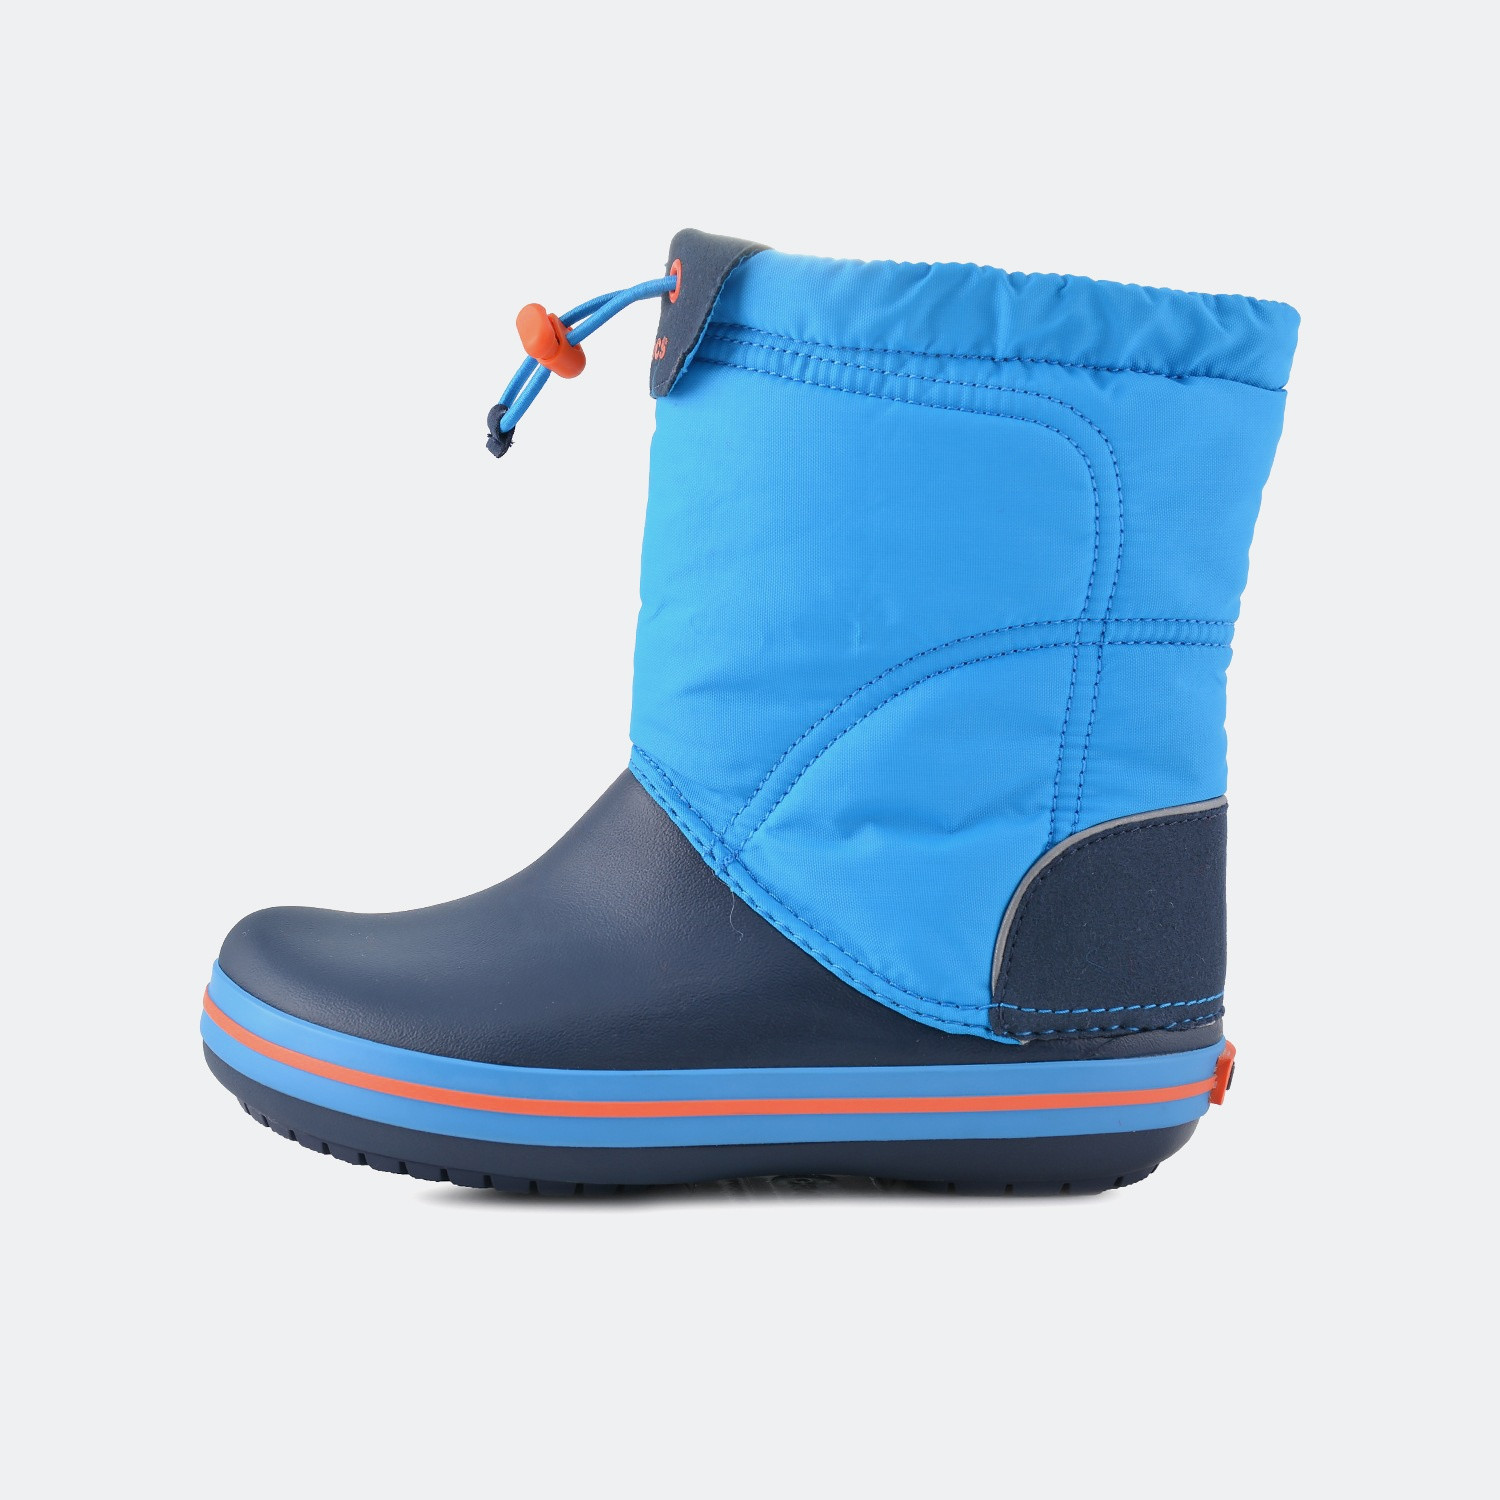 Crocs Crocband™ Lodgepoint Boot | Παιδικά Μποτάκια (10800302611_29929)